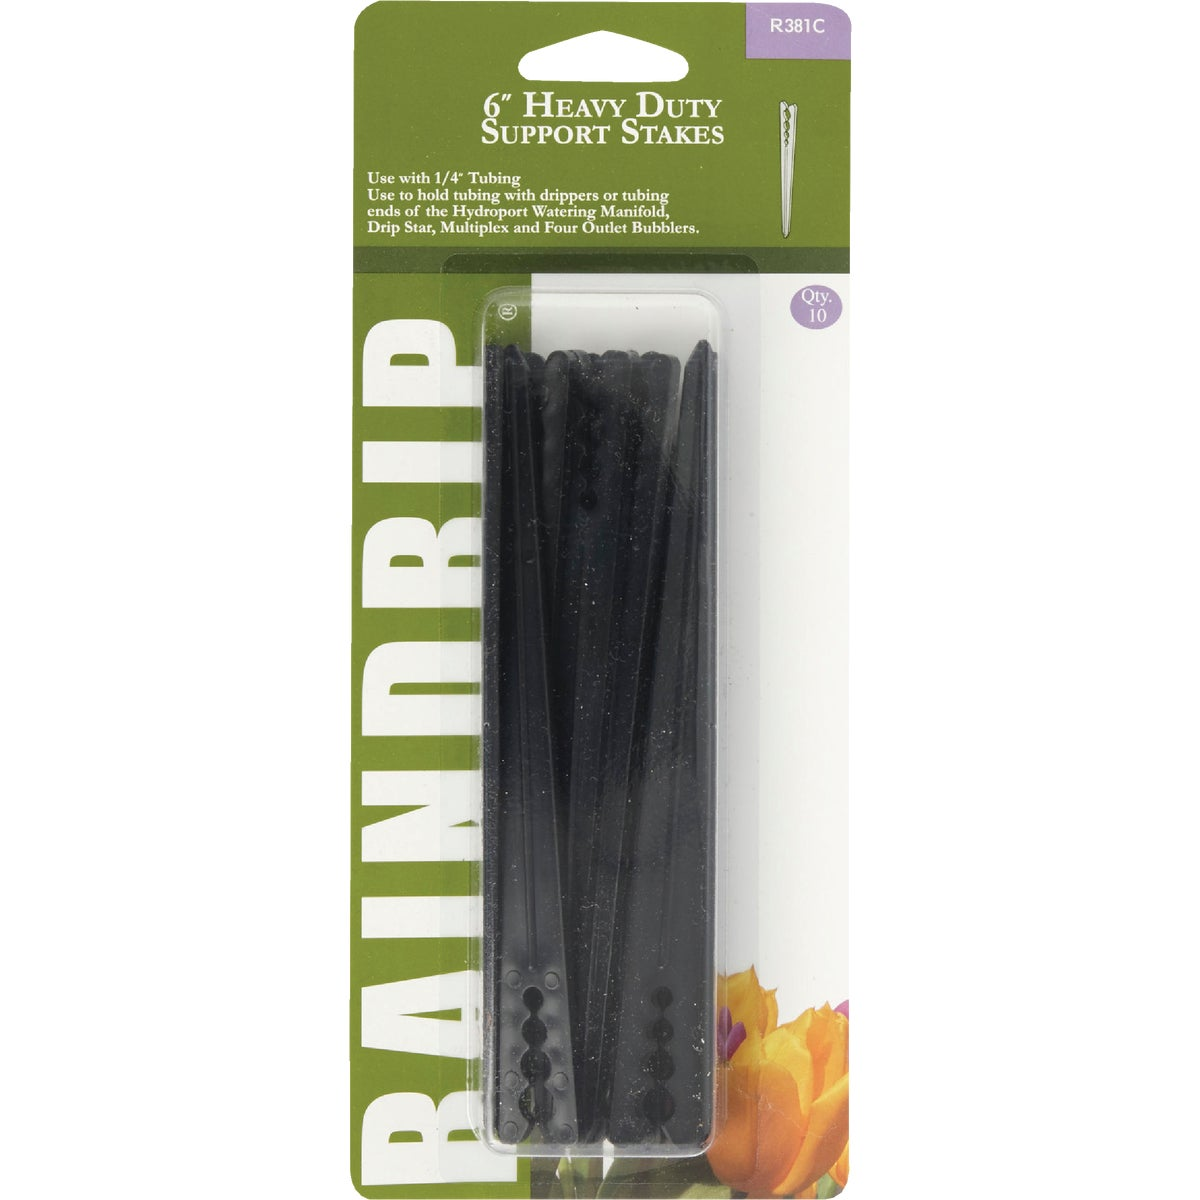 "6"" H DUTY SUPPORT STAKES - R381CT by Raindrip Inc"